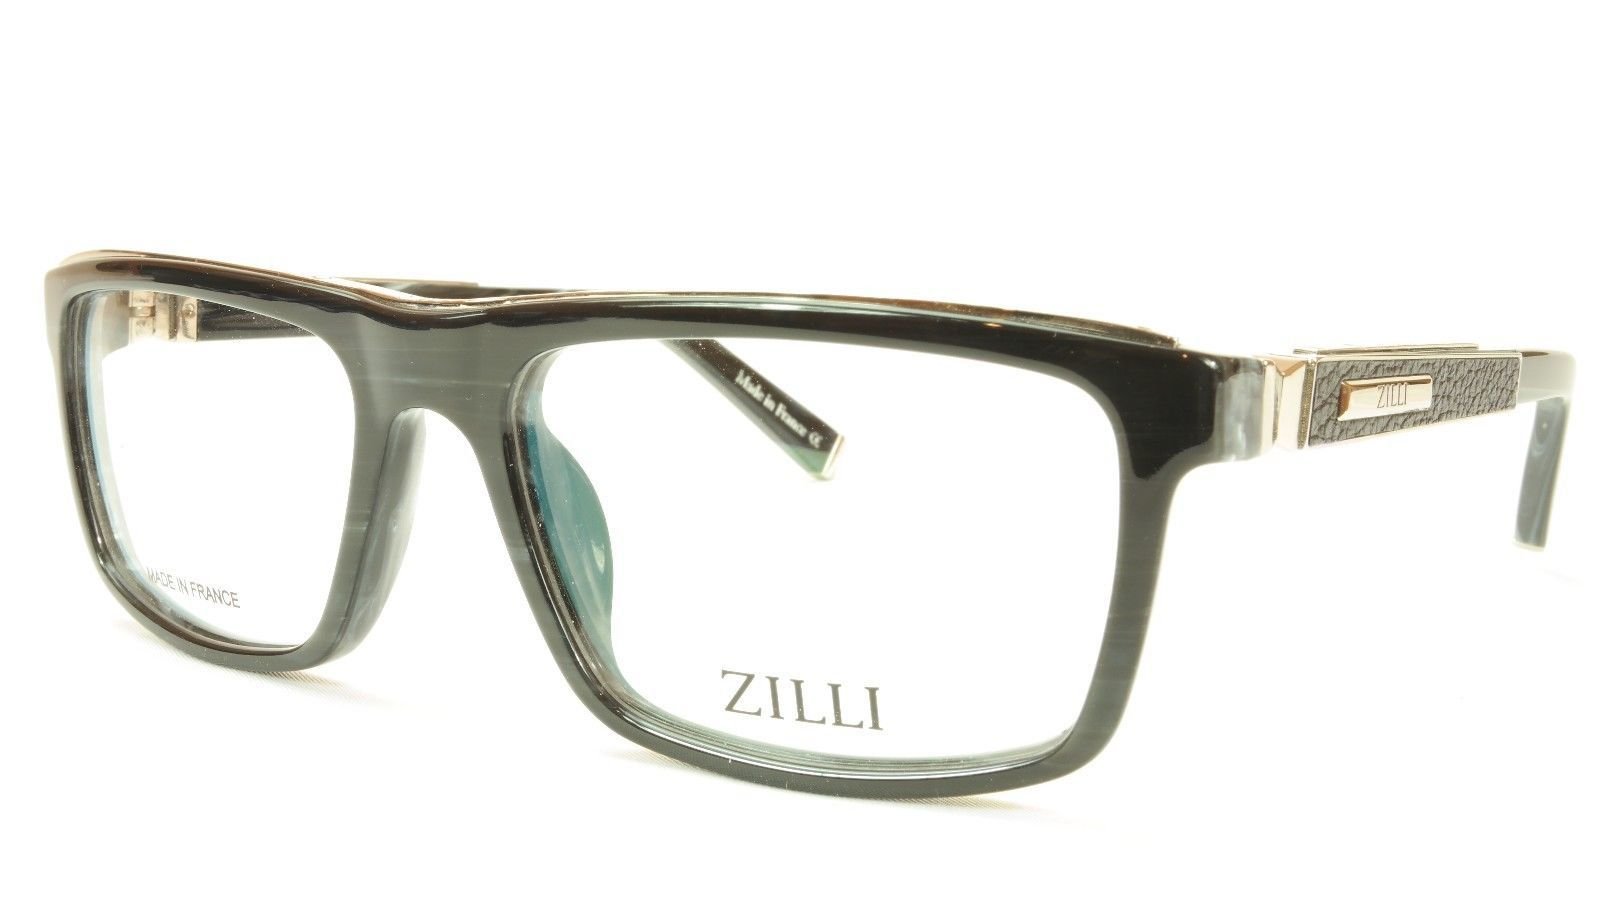 a8feacad711 S l1600. S l1600. Previous. ZILLI Eyeglasses Frame Acetate Leather Titanium  France Hand Made ZI 60002 C02